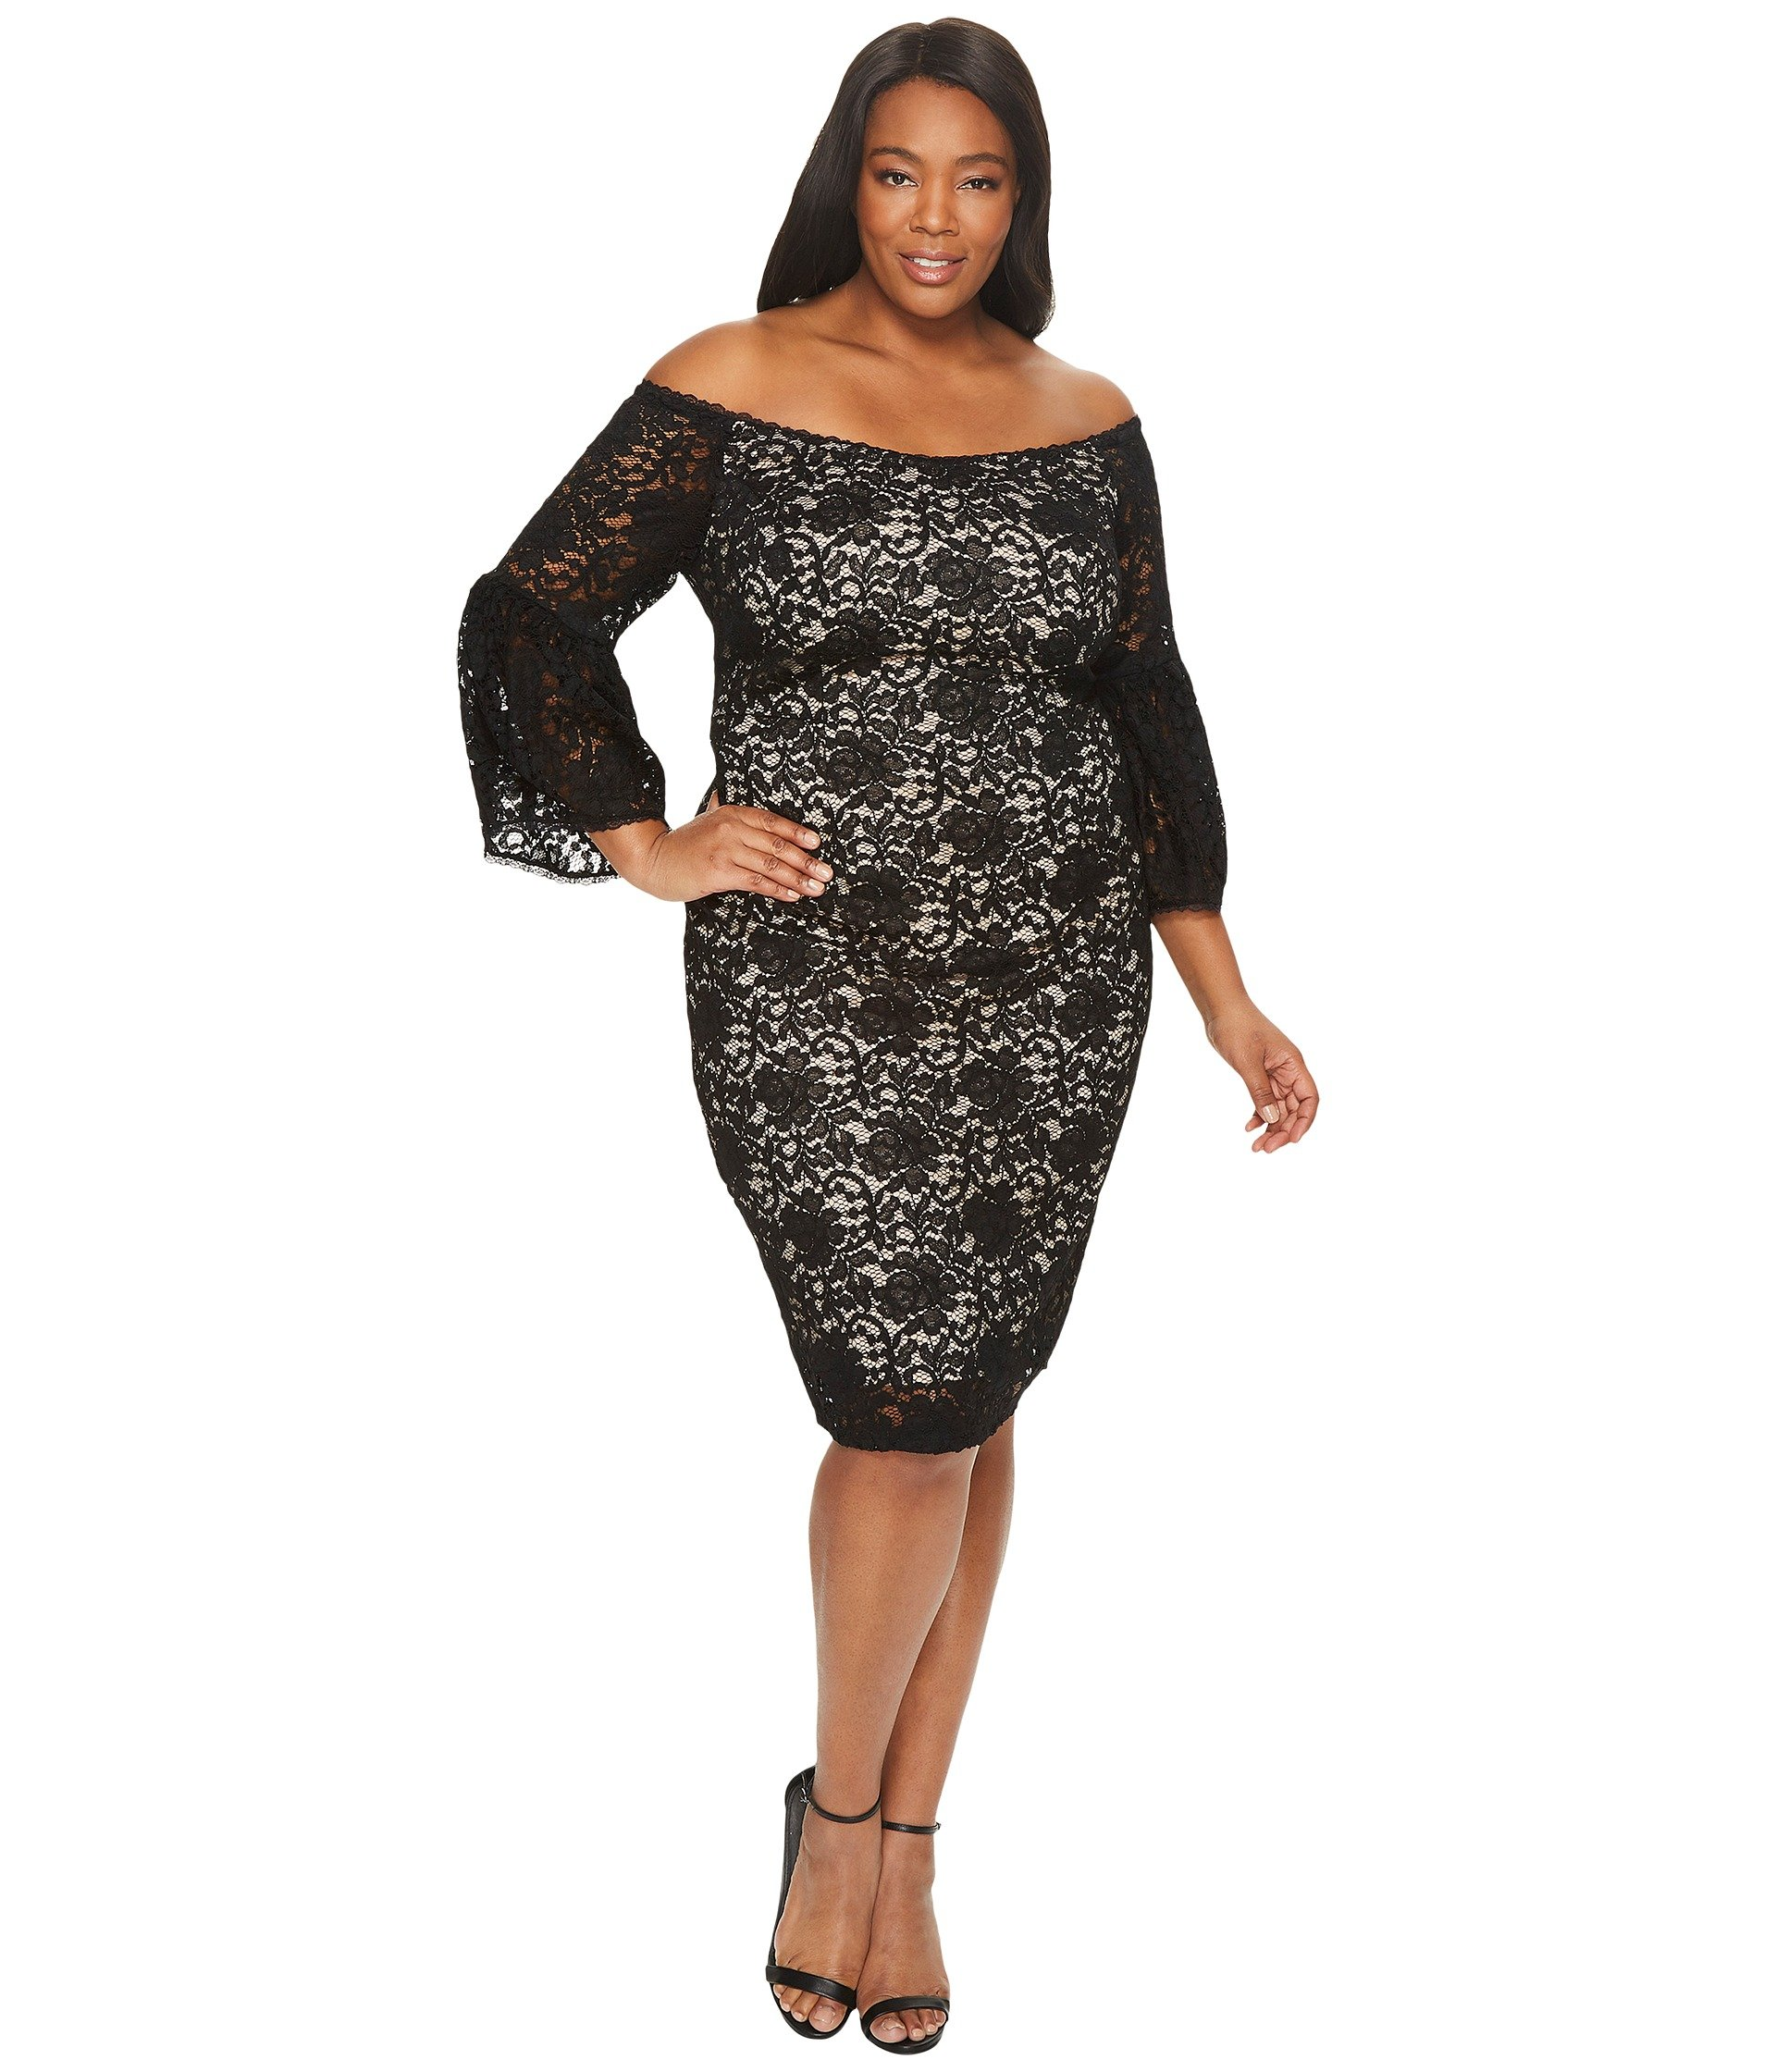 a63c69ad7f885 Adrianna Papell Plus Size Juliet Lace Off The Shoulder Sheath Dress In  Black Bisque